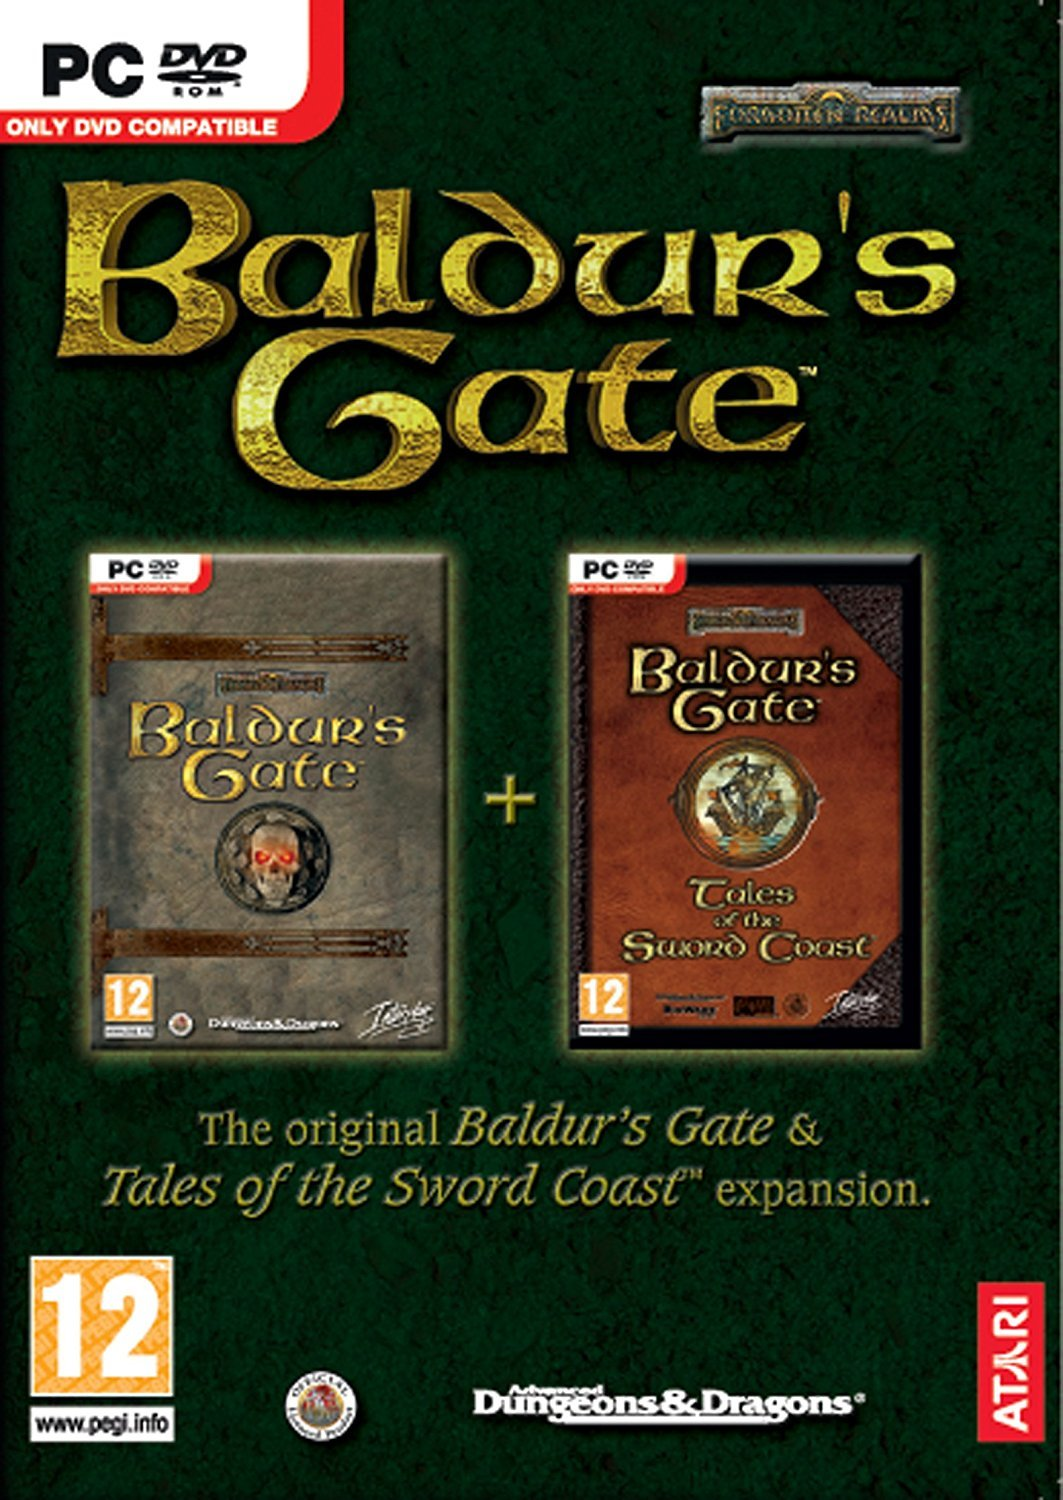 Baldur's Gate + Tales of the Sword Coast Expansion for PC Games image